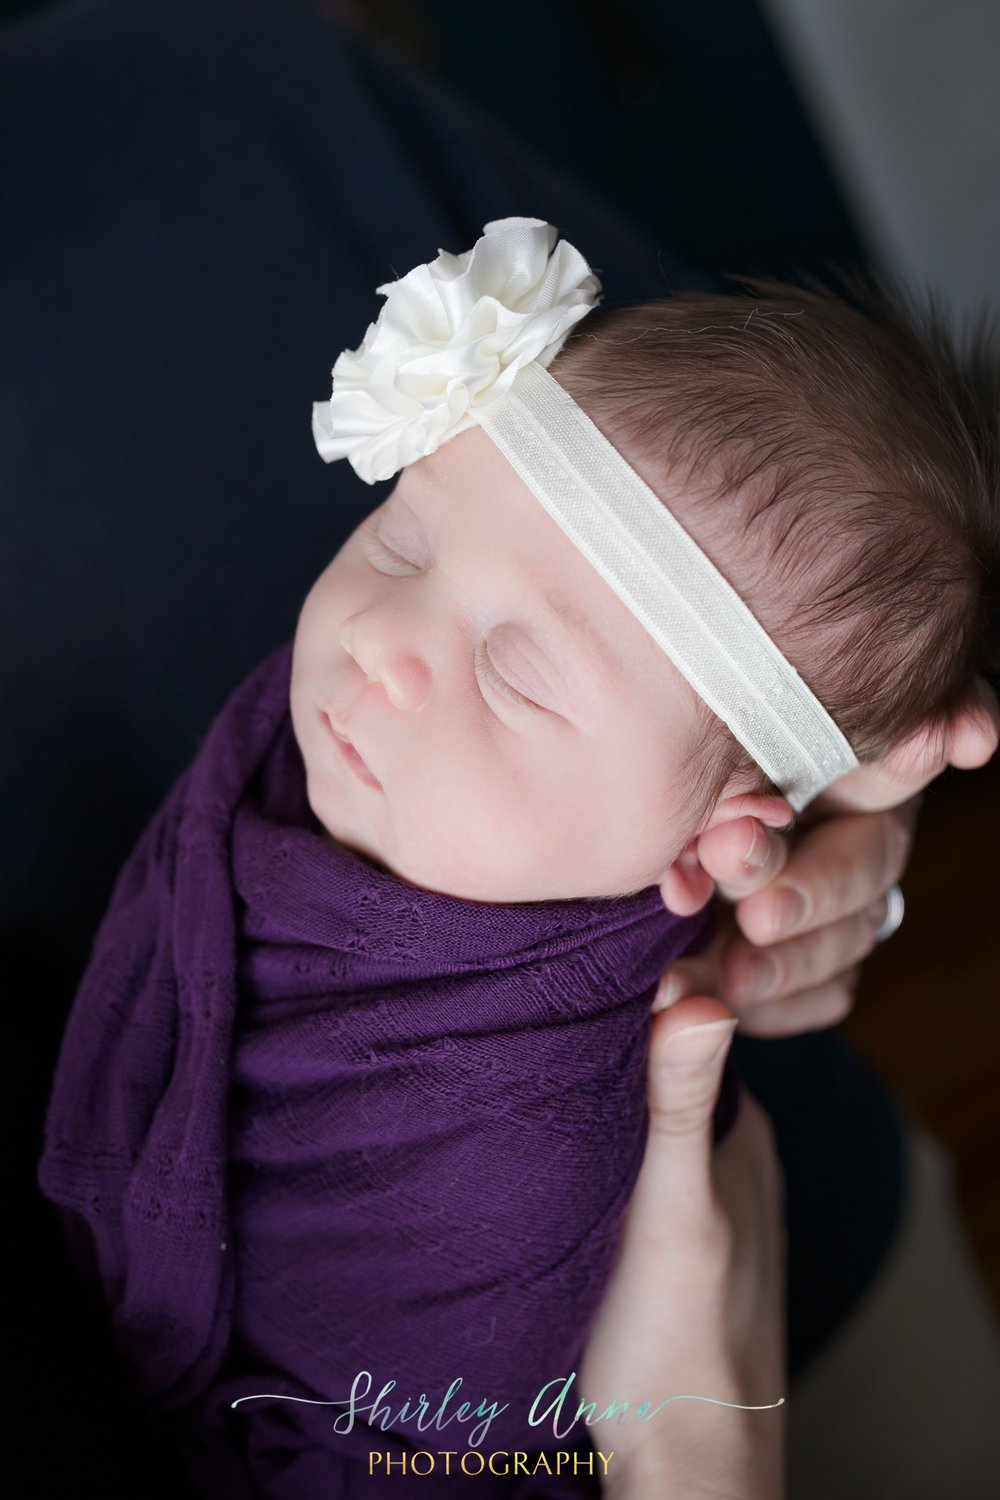 newborn baby girl held by mom wrapped with headband.